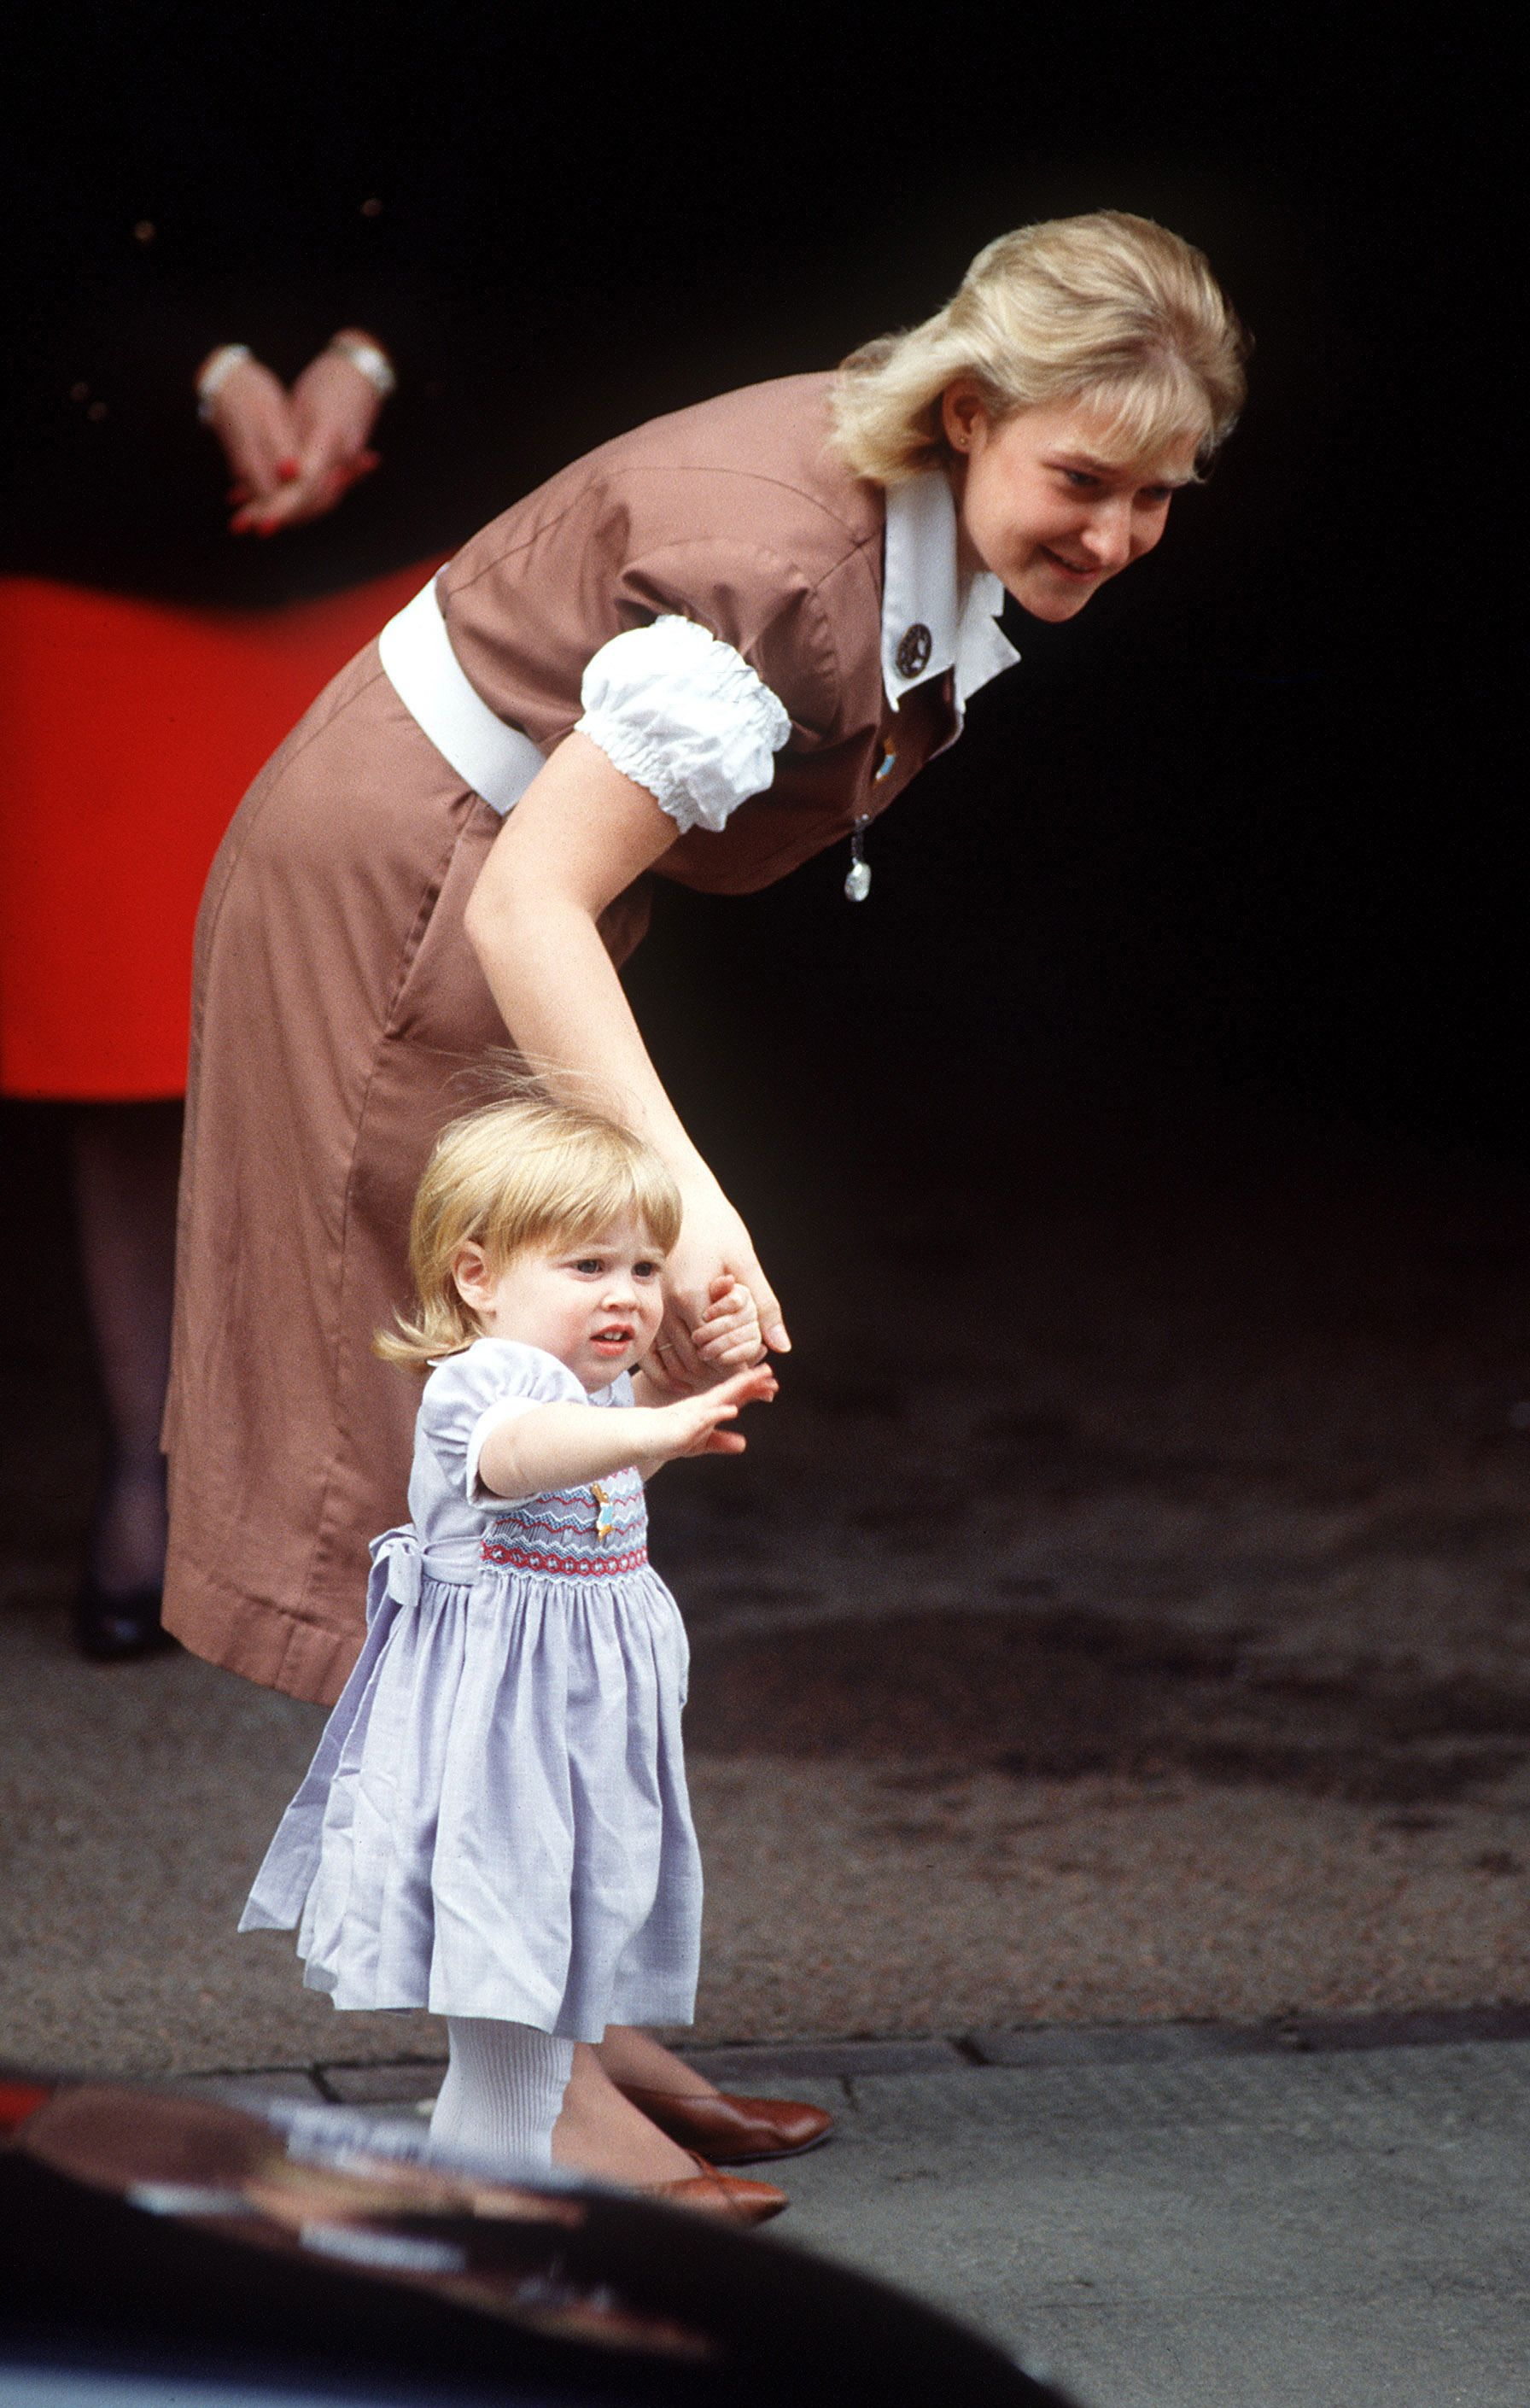 Princess Beatrice with her nanny Alison Wardley on their way to the hospital to visit her new baby sister, Eugenie.